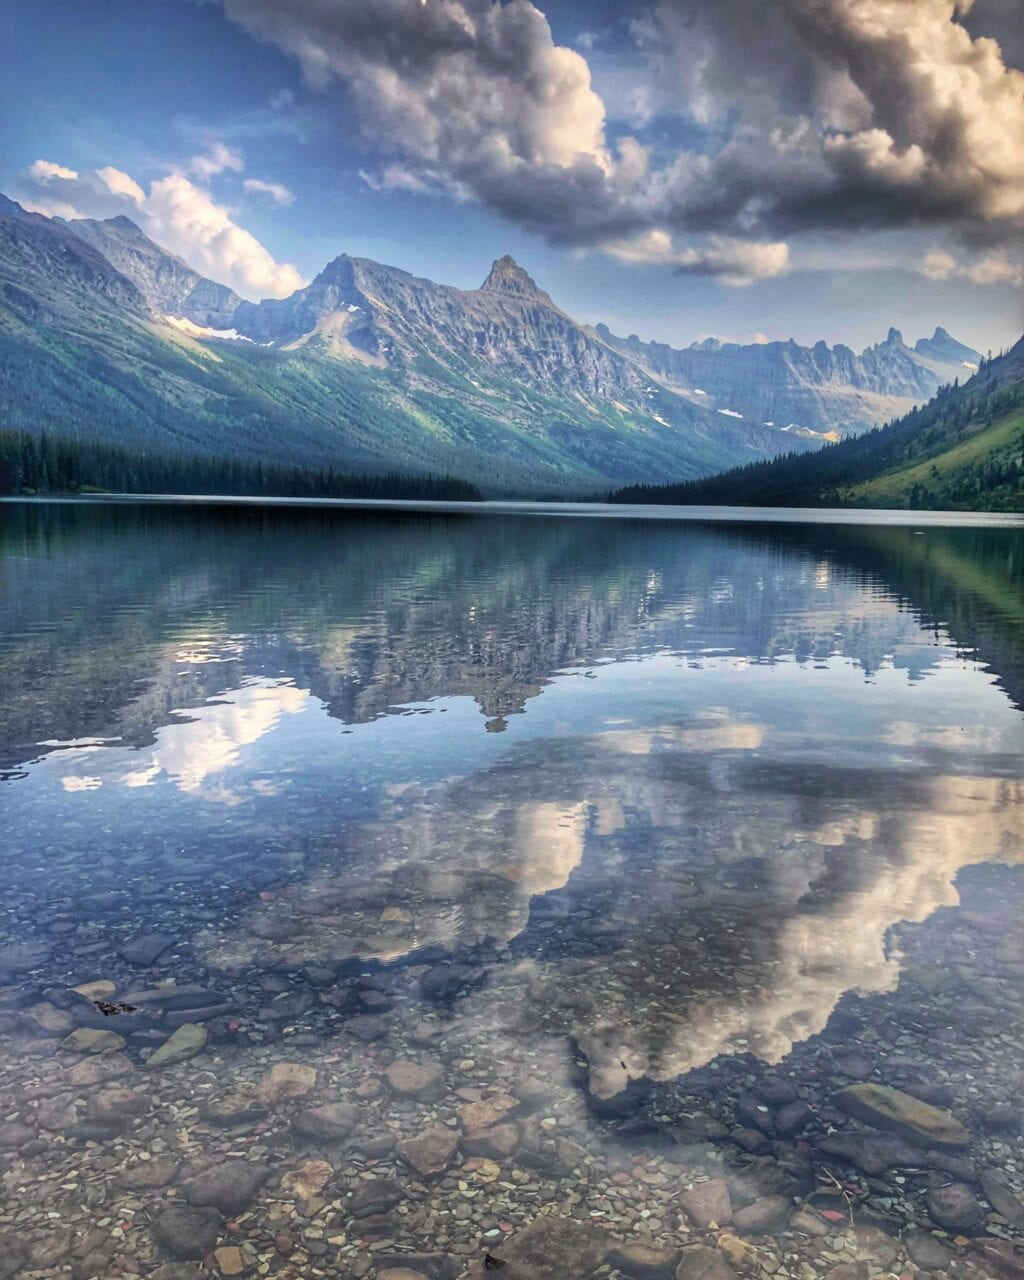 A view of a lake and mountains.